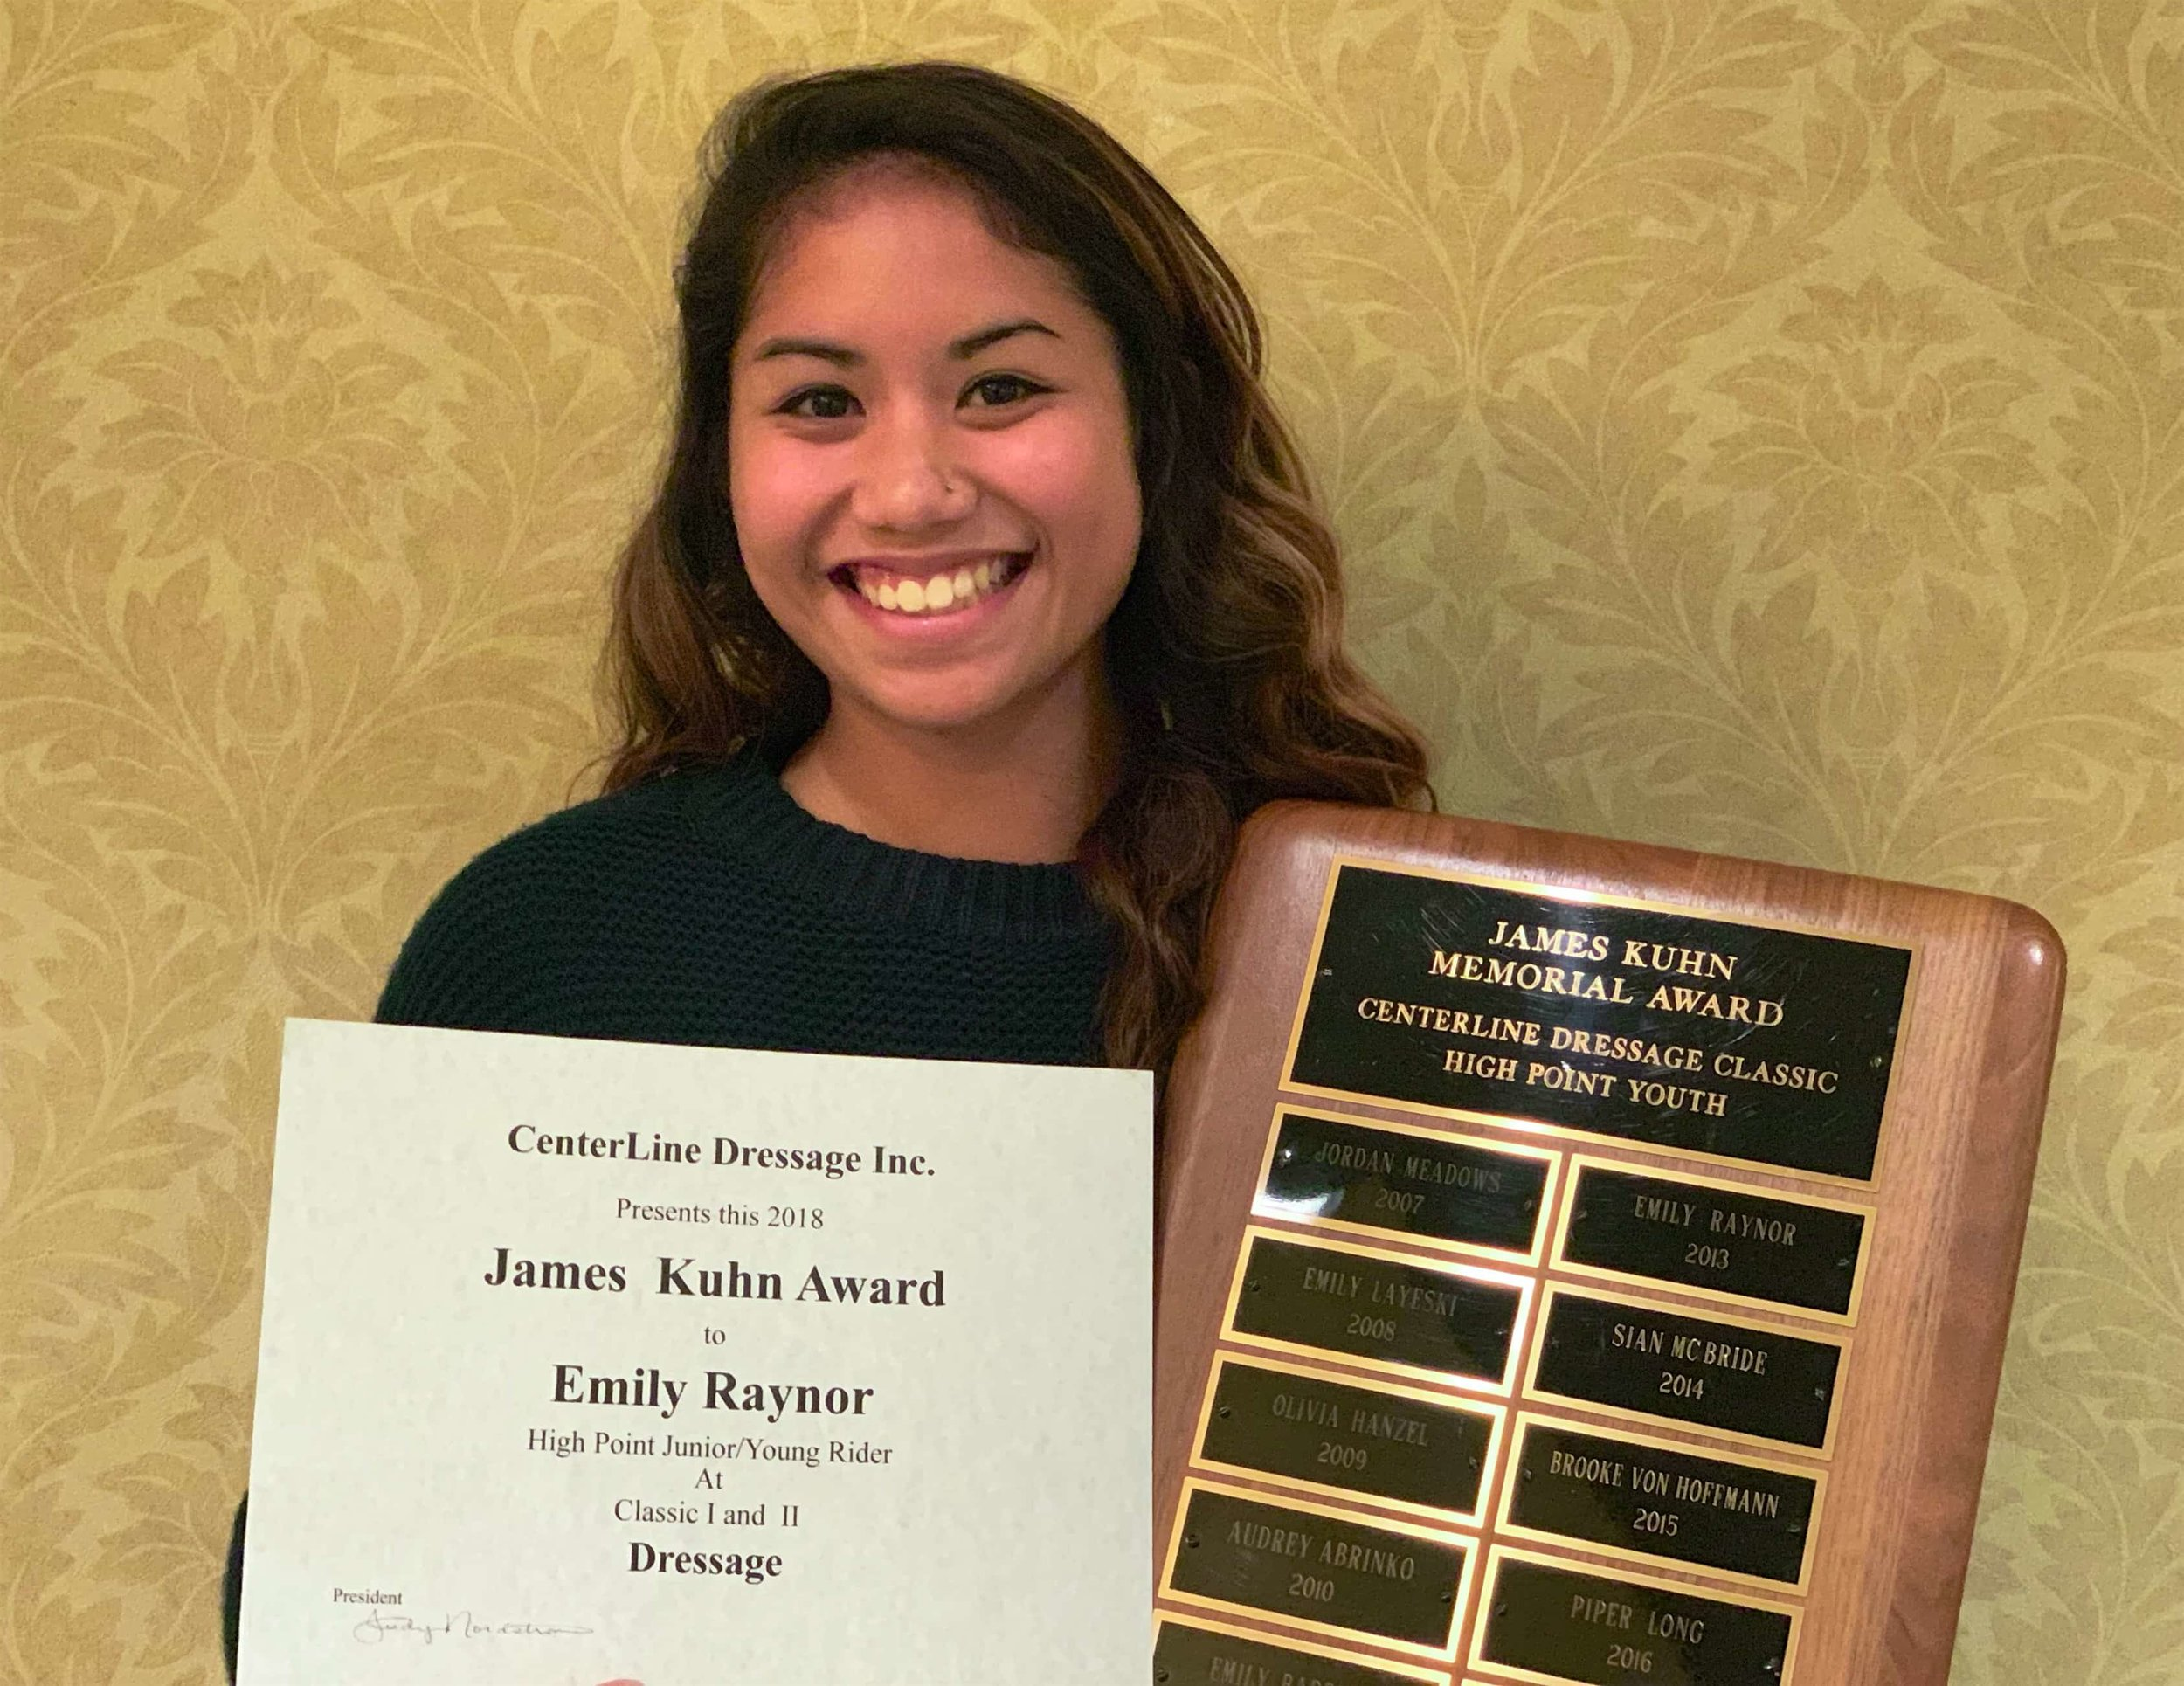 Emily Raynor receiving the James Kuhn Memorial Award for the second time